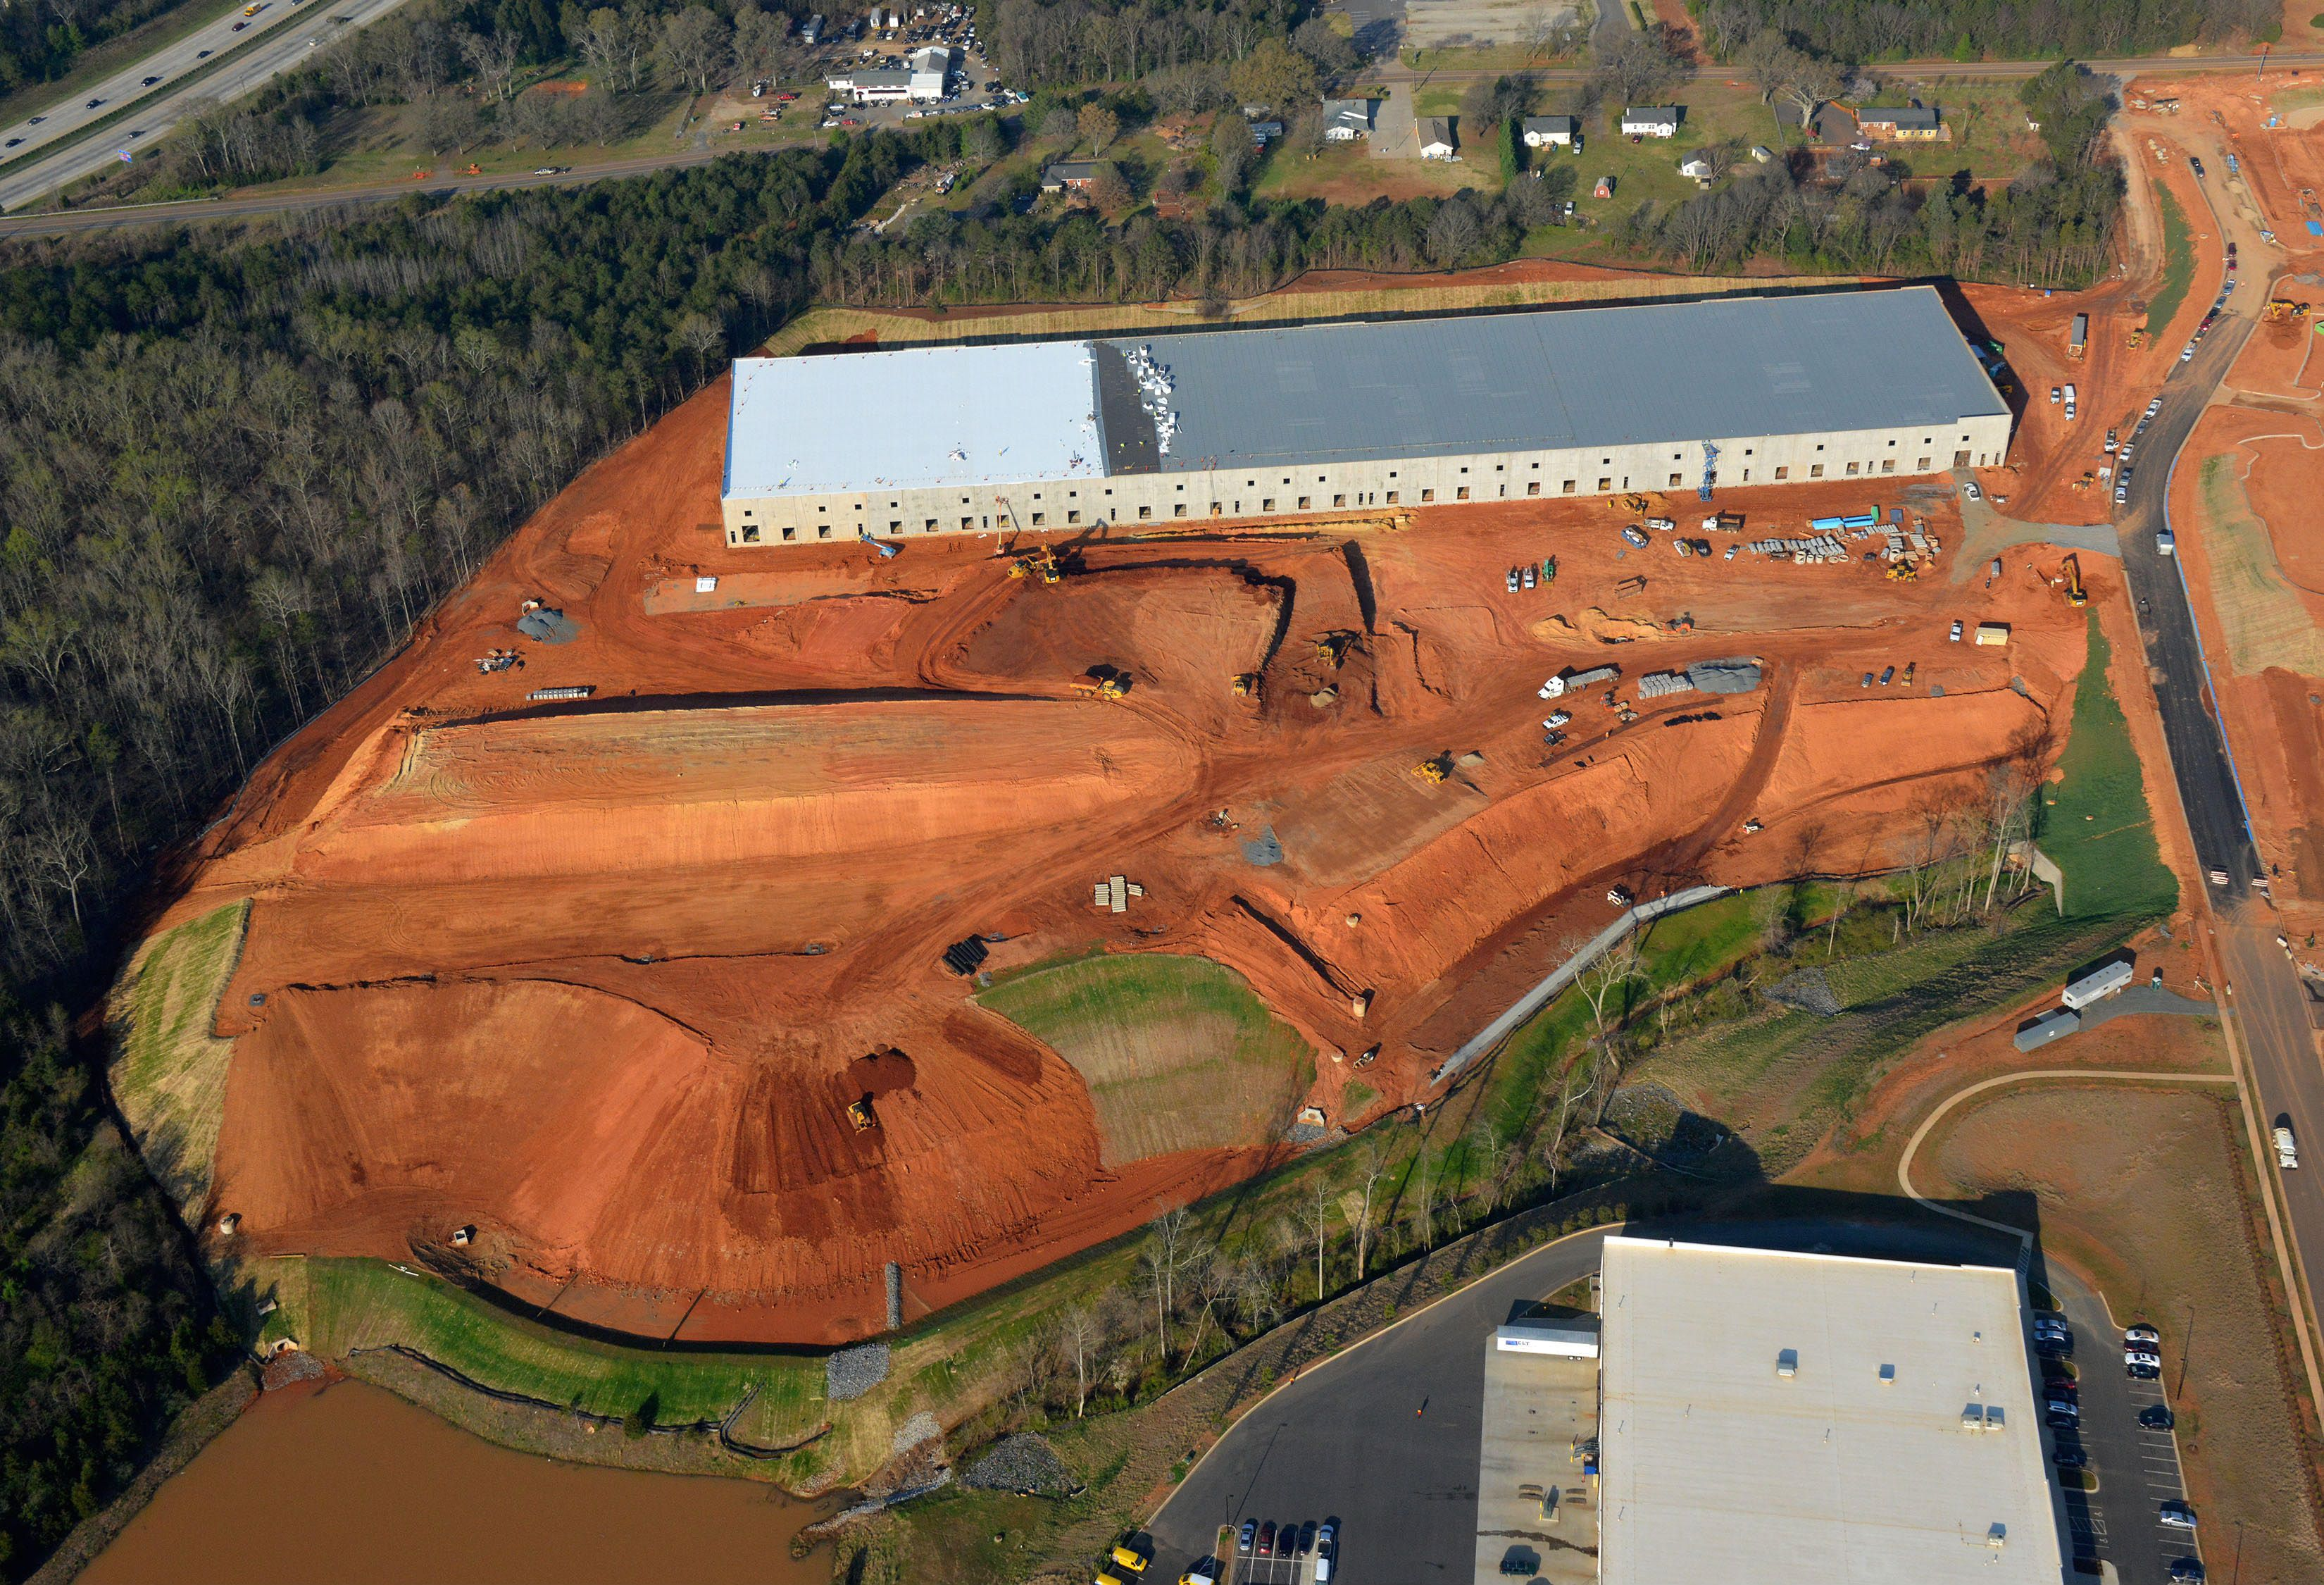 Charlotte road construction projects - Projects